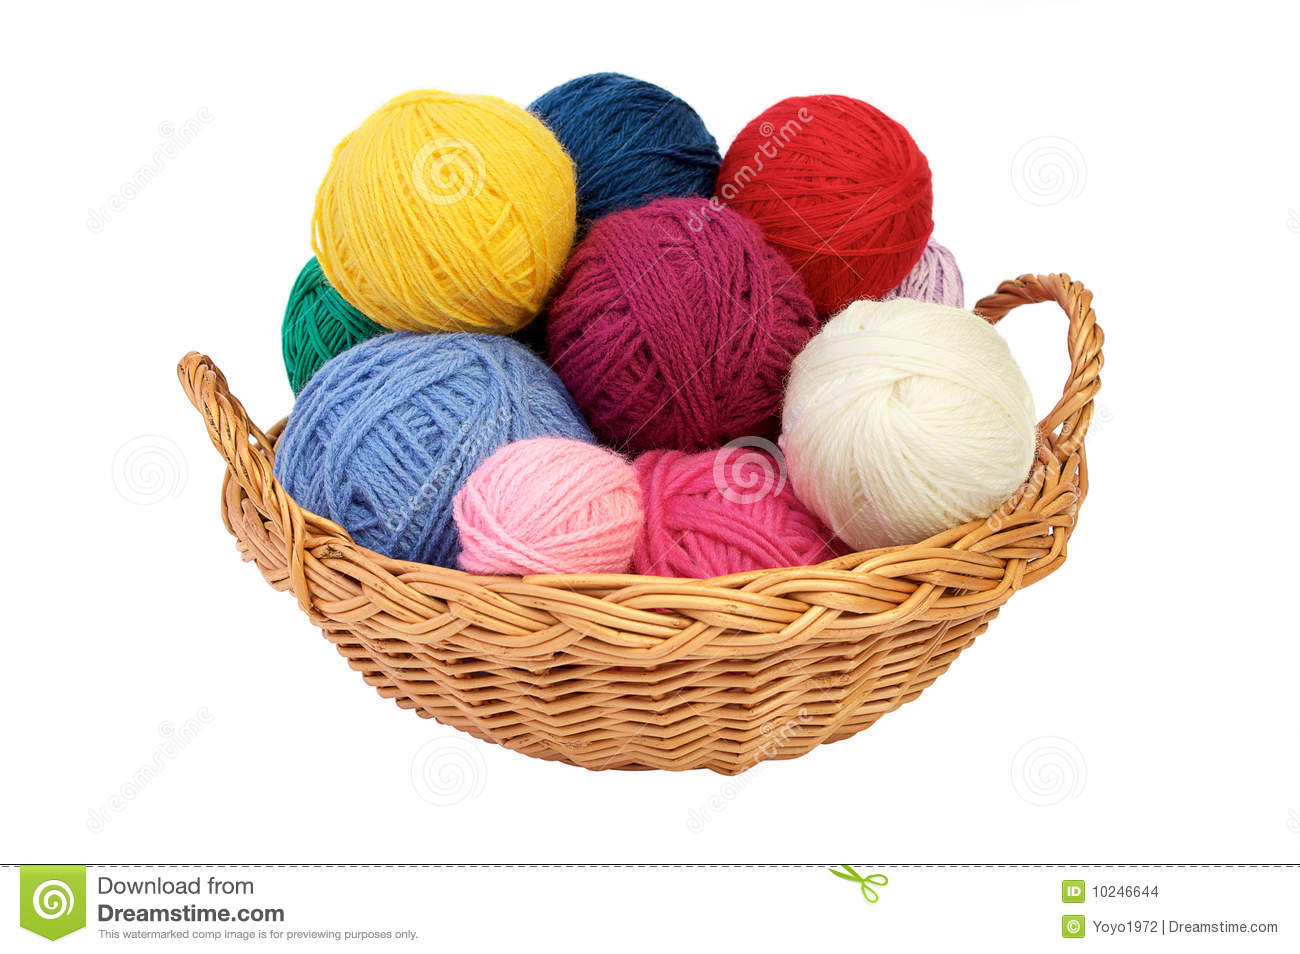 Knitting Basket Yarn : Colorful knitting yarn in a basket stock photo image